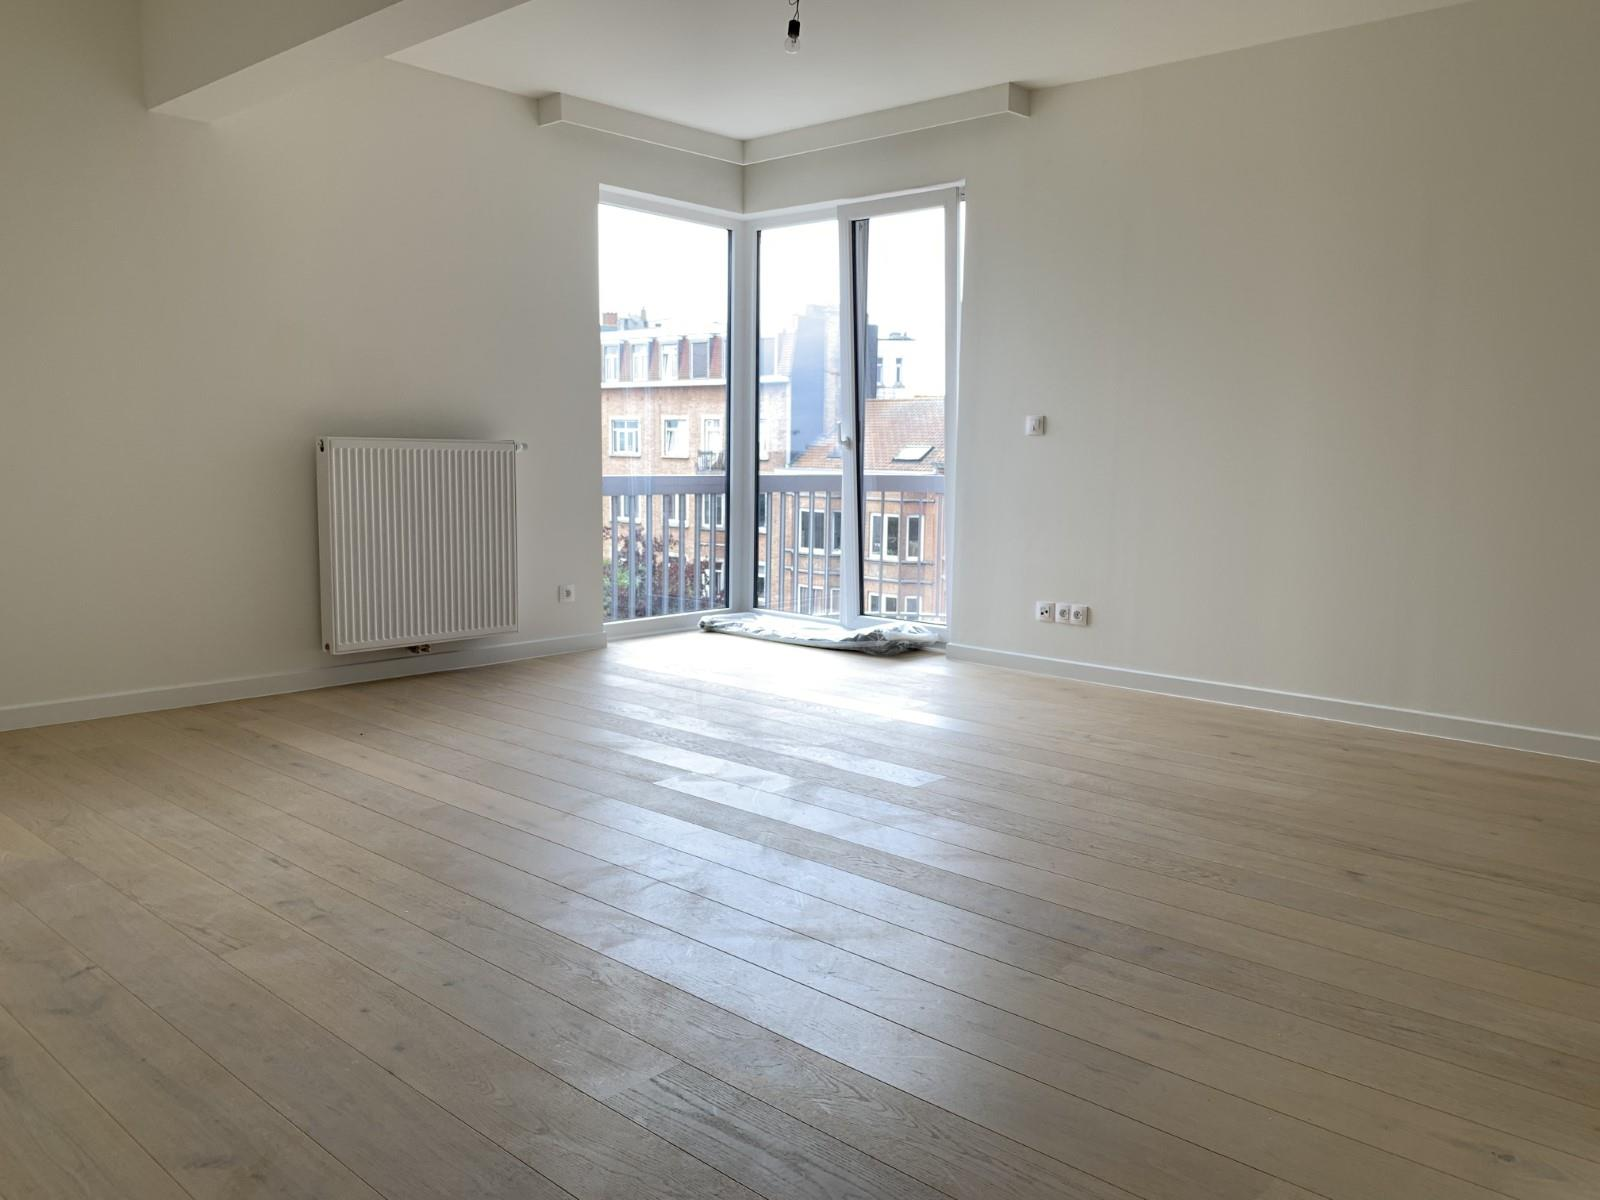 Appartement exceptionnel - Schaerbeek - #3875201-22